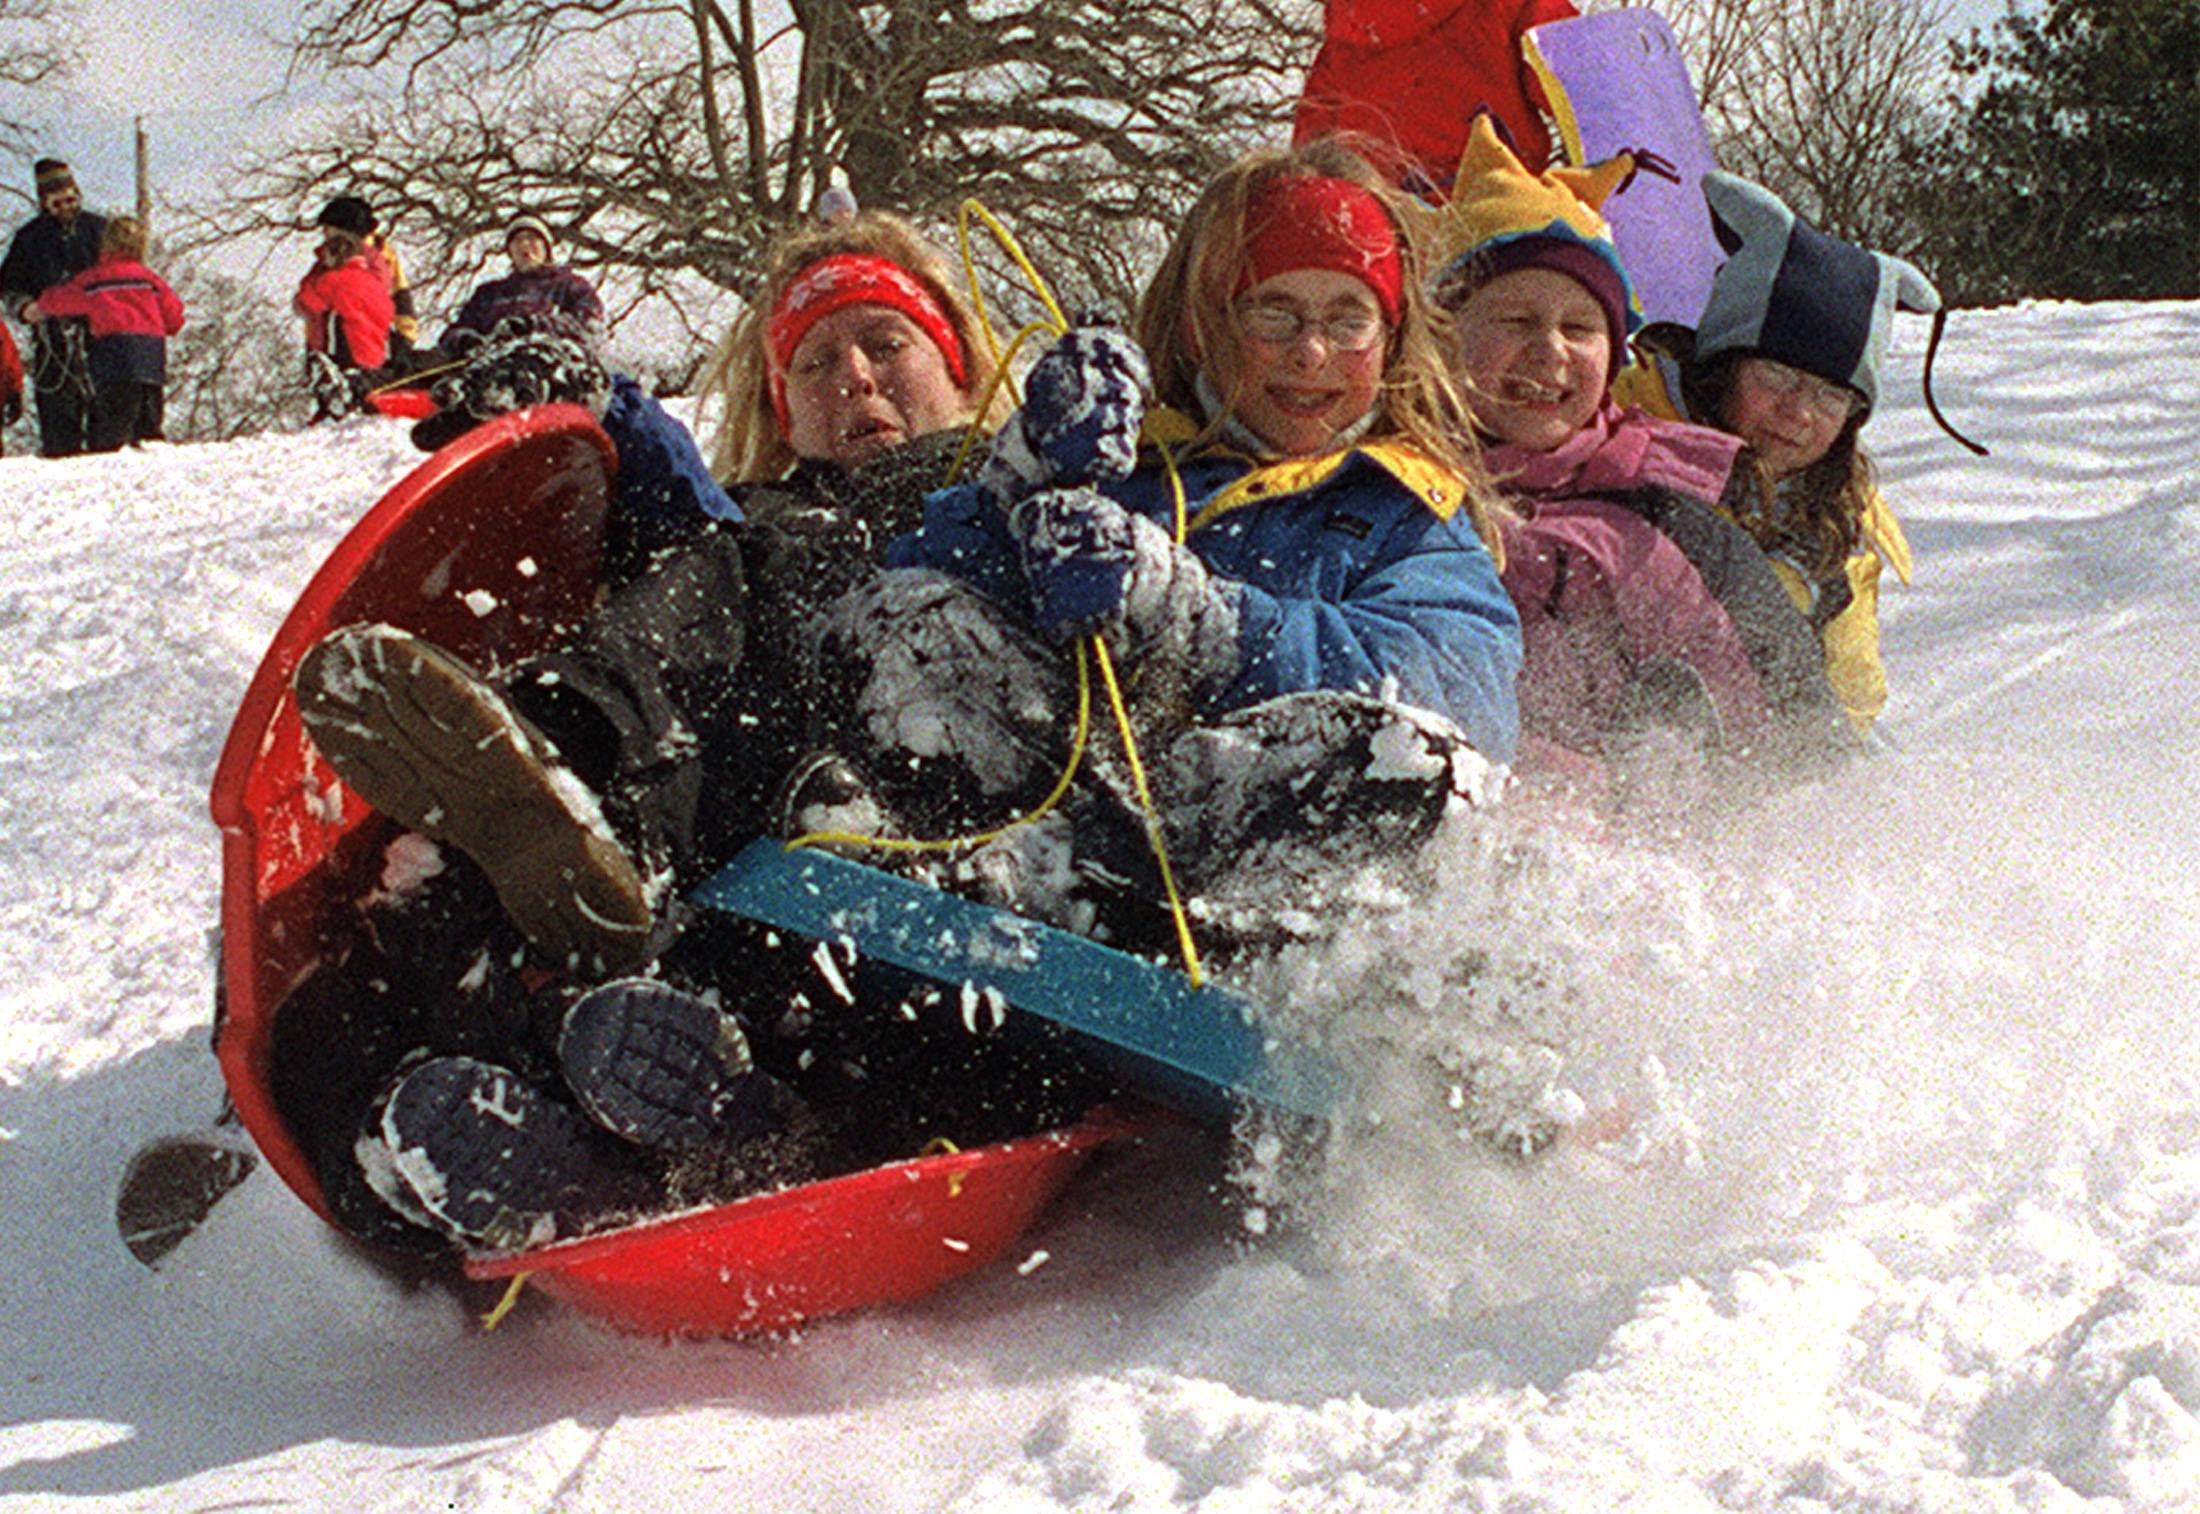 Suburbs abound with sledding, tubing, boarding options